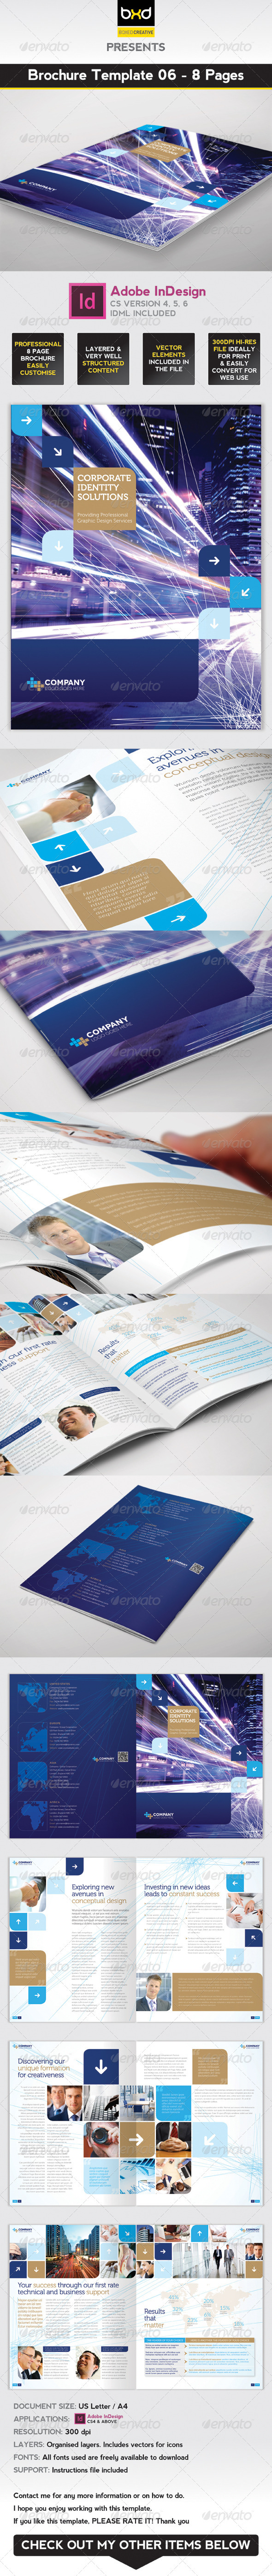 GraphicRiver Brochure Template InDesign 8 Page Layout 06 3772515